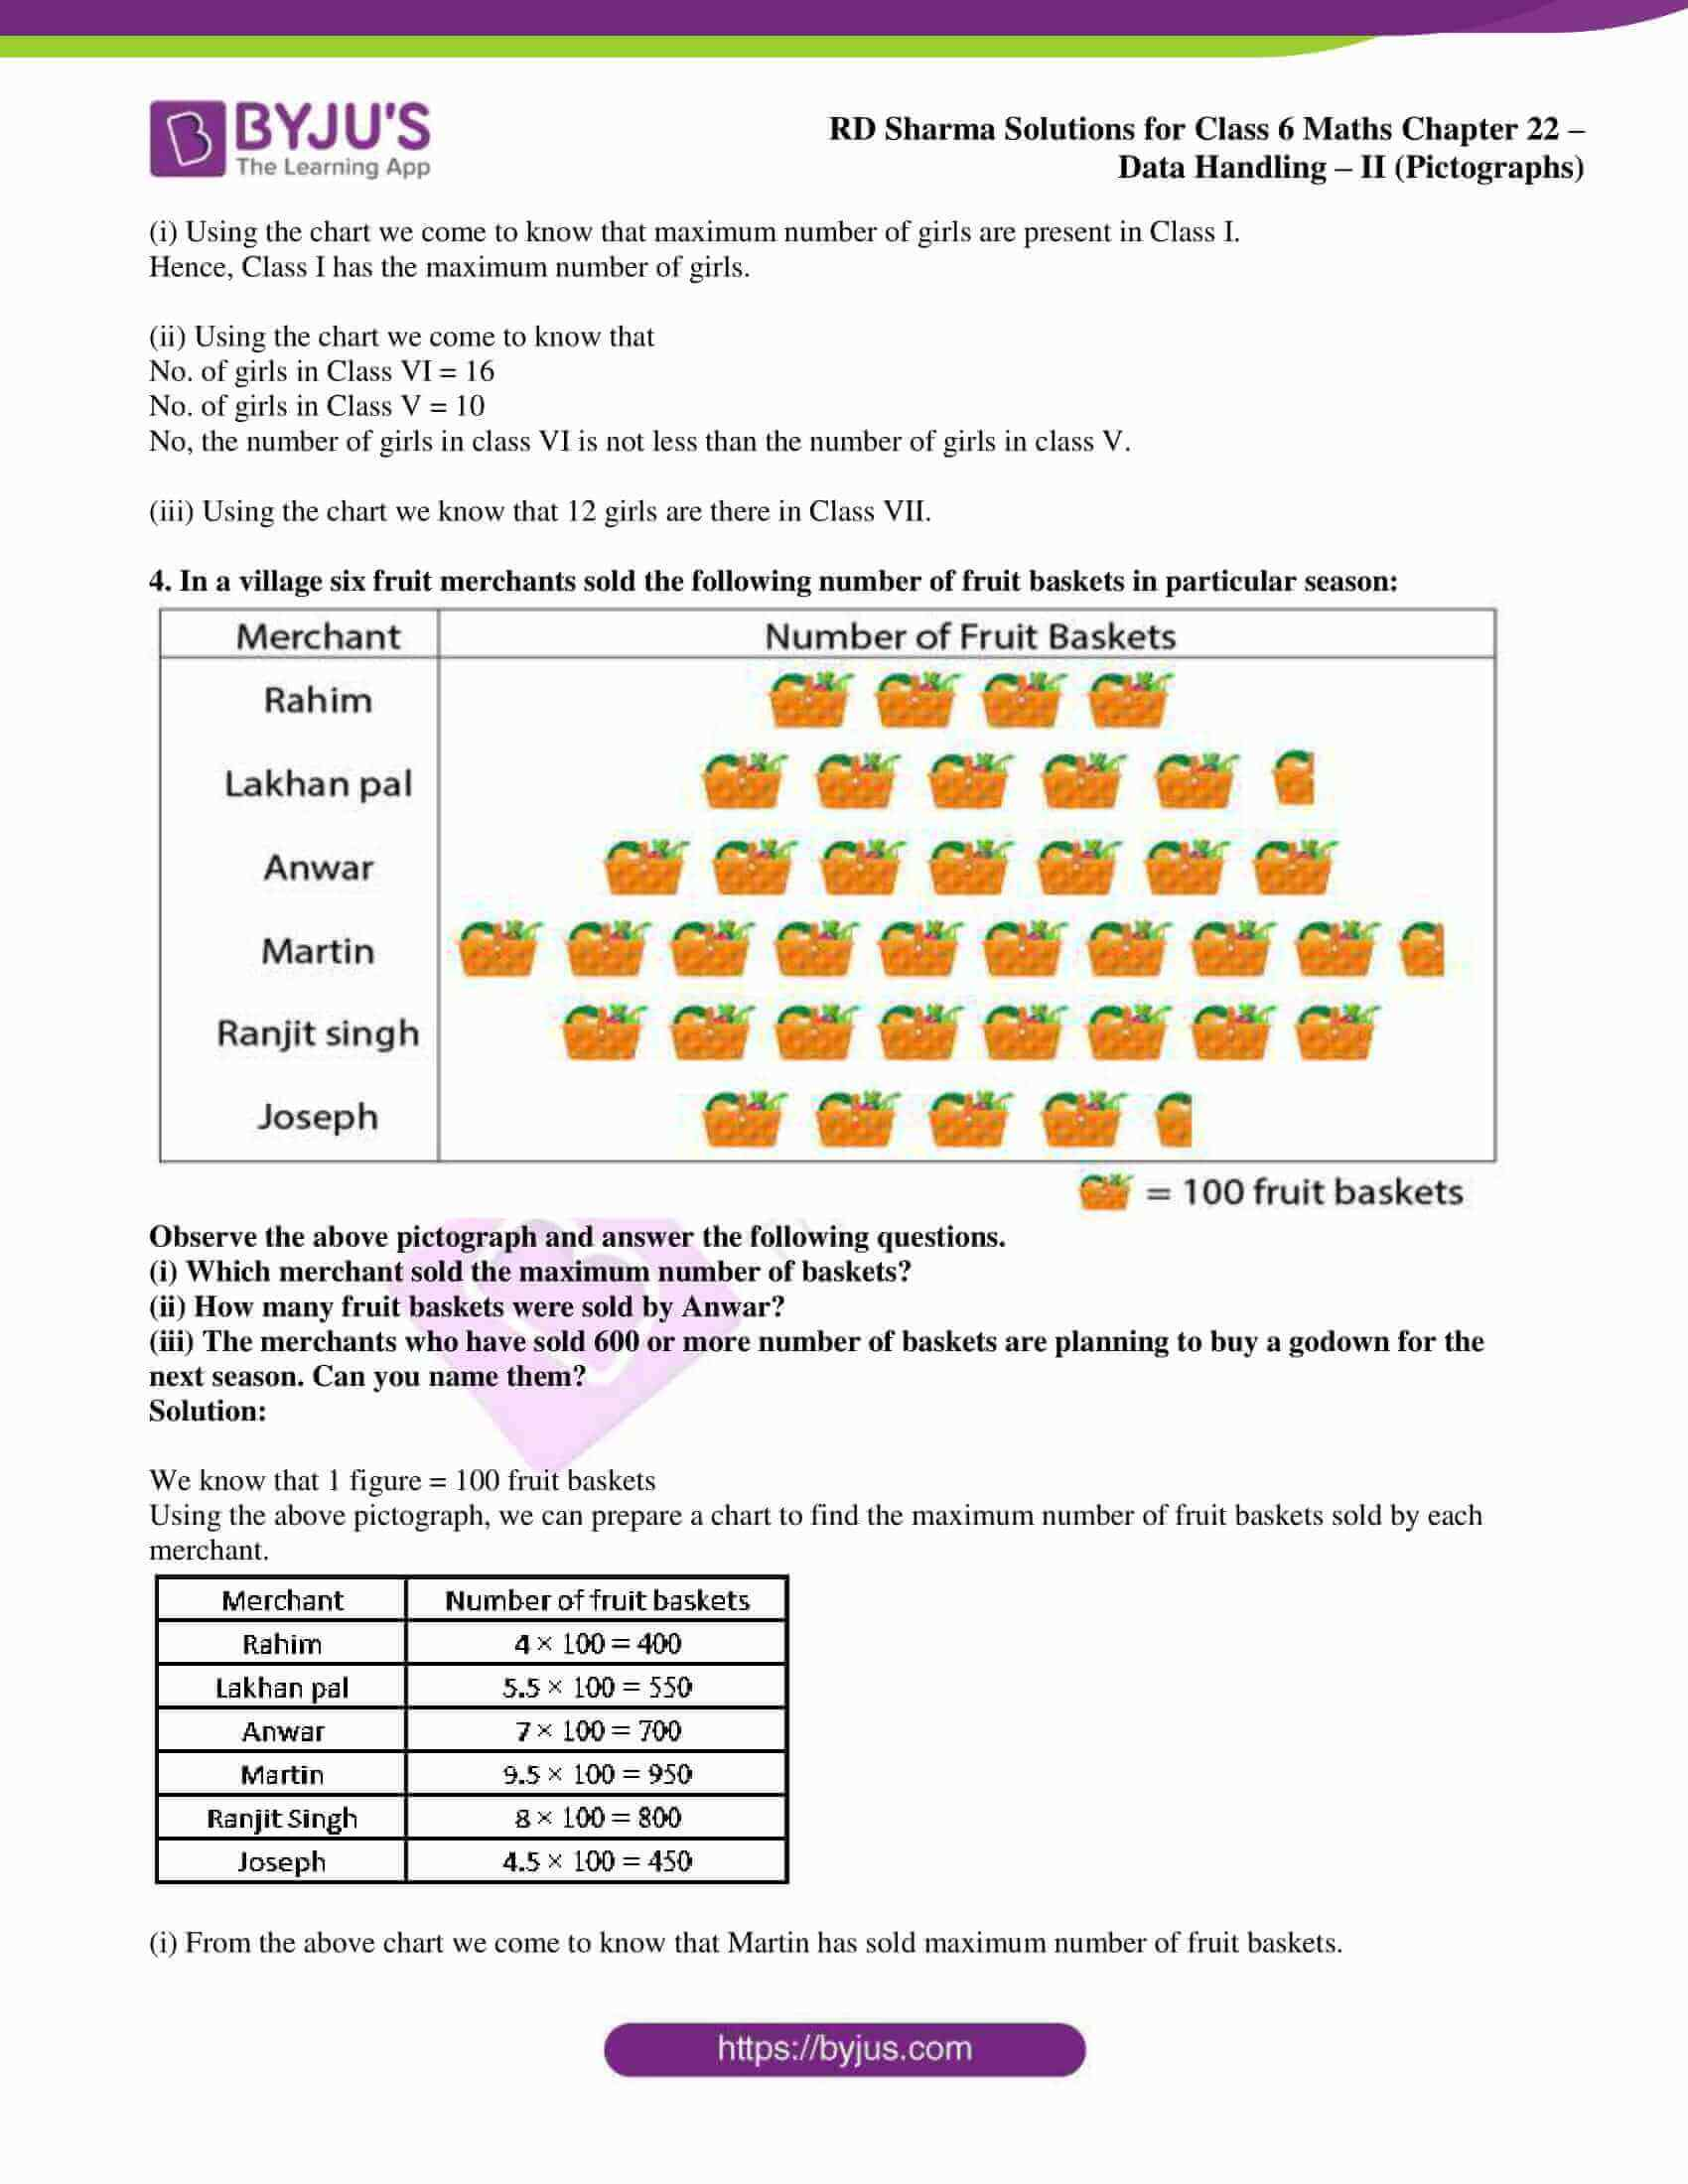 rd sharma solutions nov2020 class 6 maths chapter 22 exercise 1 4